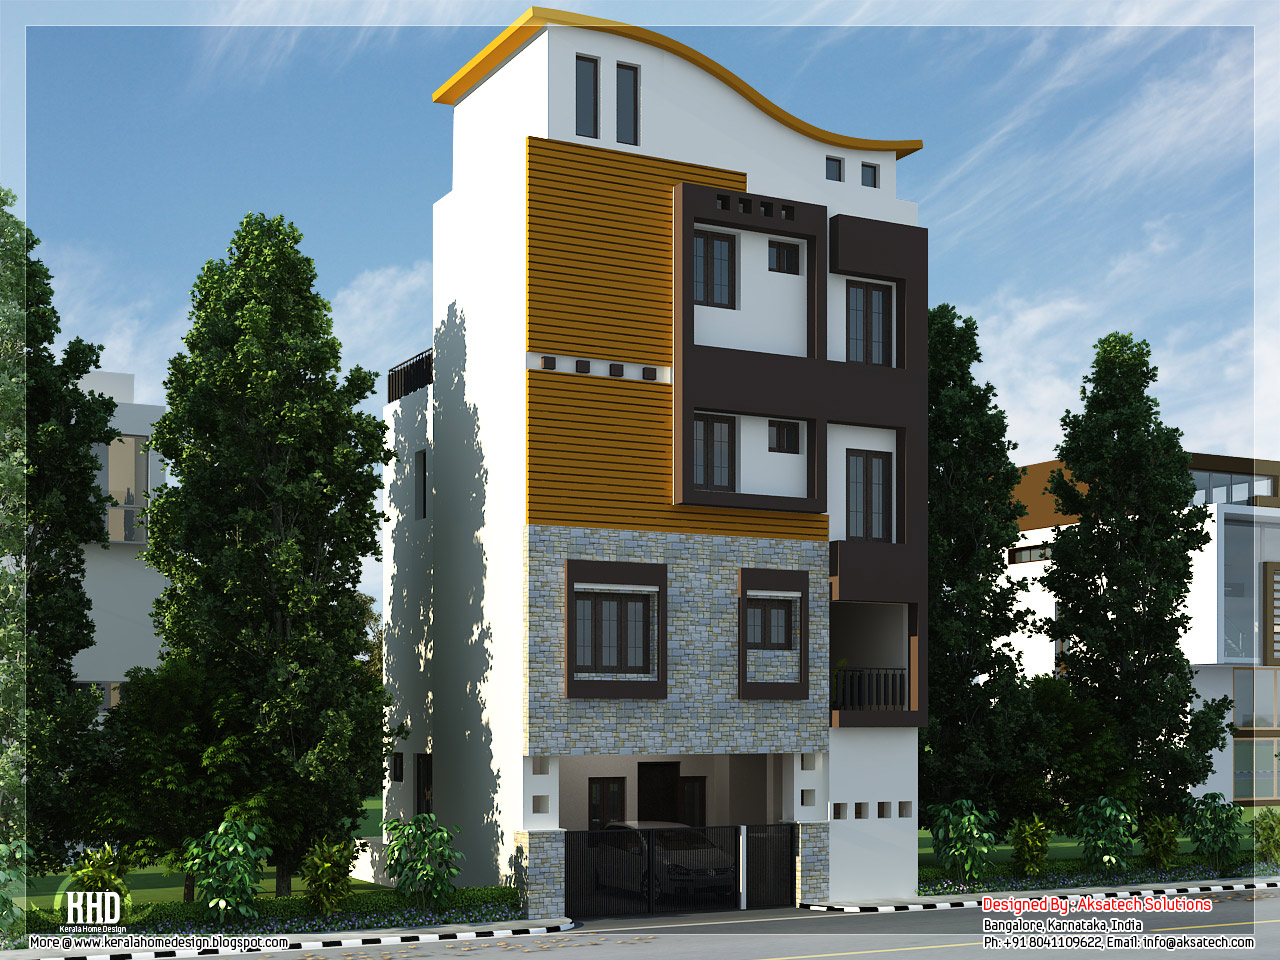 Front Elevation Of Small Houses   Elegance Dream Home Design Mix collection of 3D home elevations and interiors   Kerala home